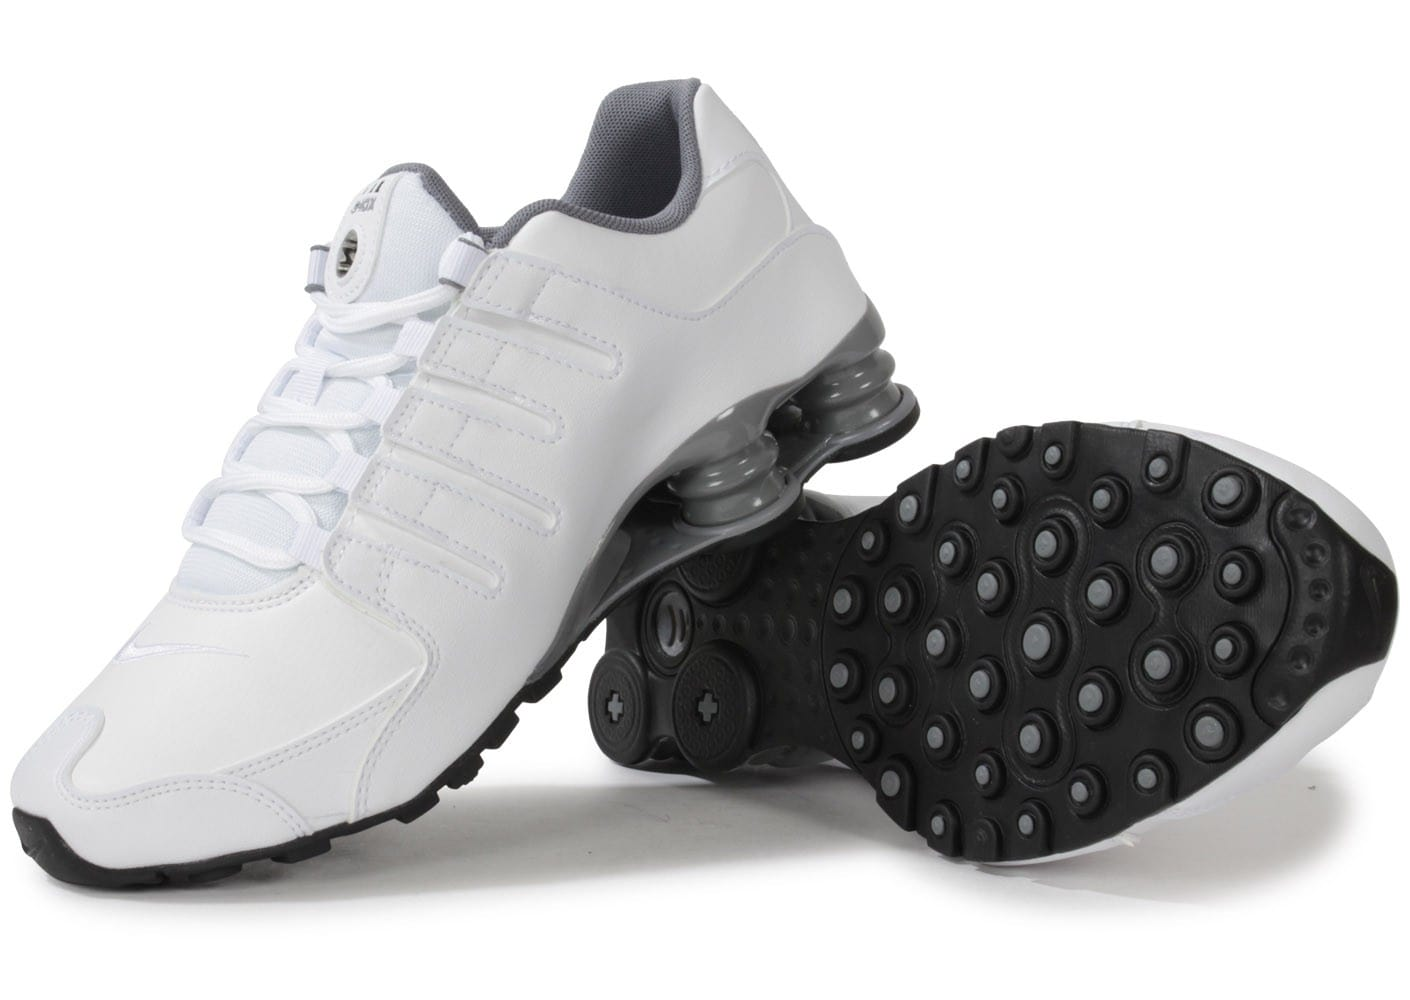 huge selection of 60c9c ae0da chaussures nike shox nz blanche vue dessous semelle